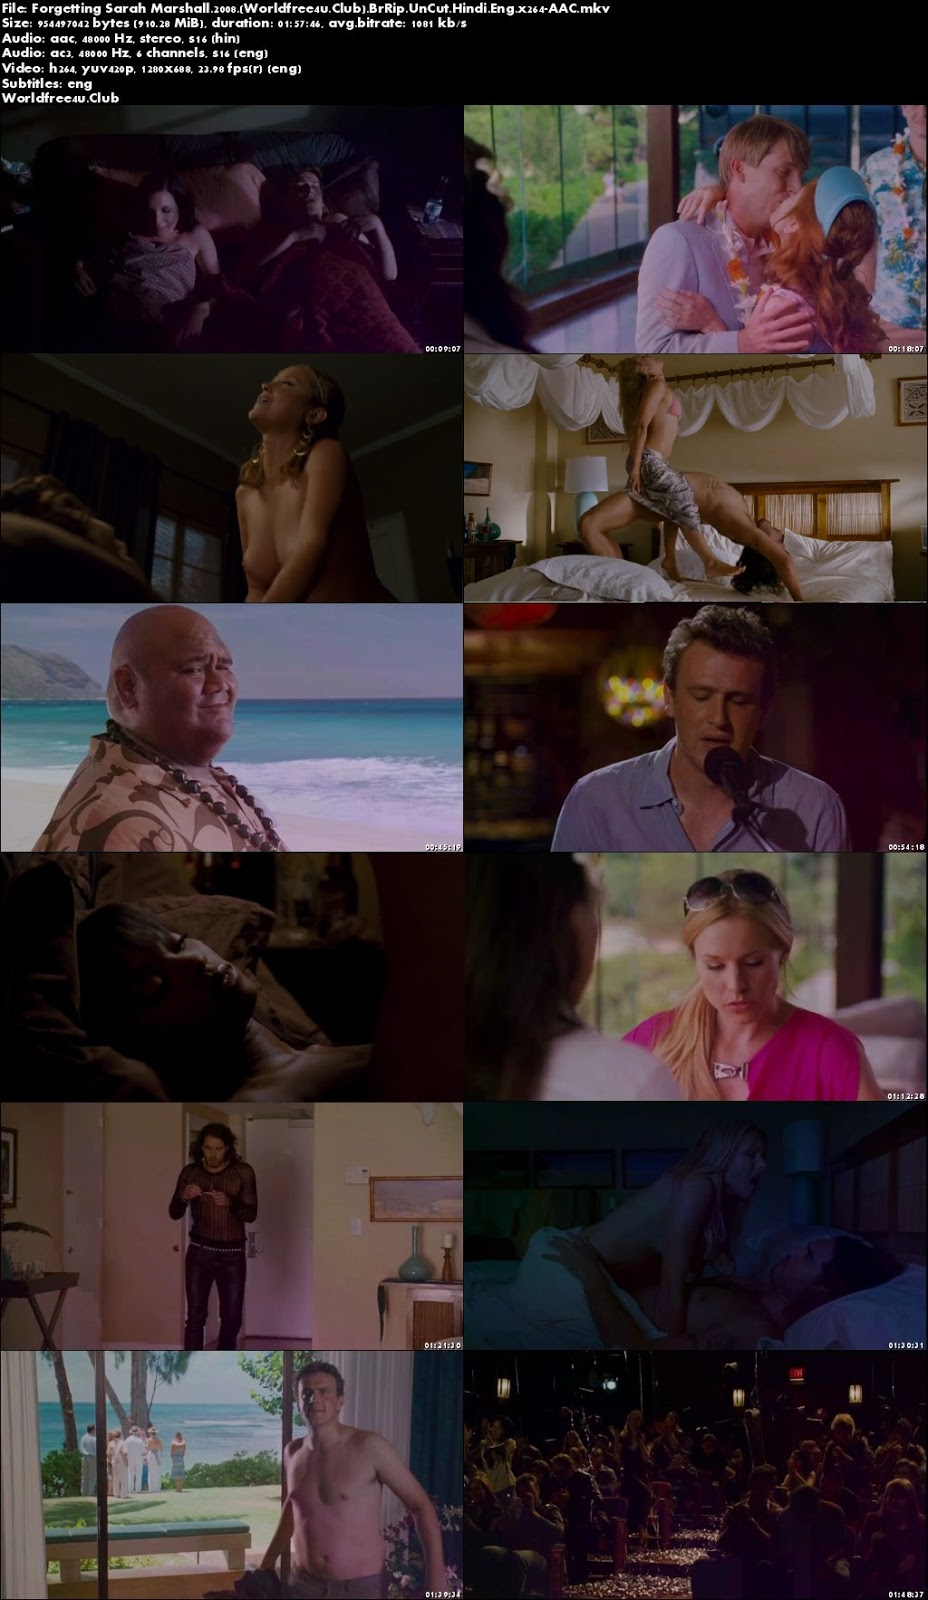 Screen Shoot of Forgetting Sarah Marshall 2008 BRRip 720p Dual Audio Unrated In Hindi English Watch Online Hd